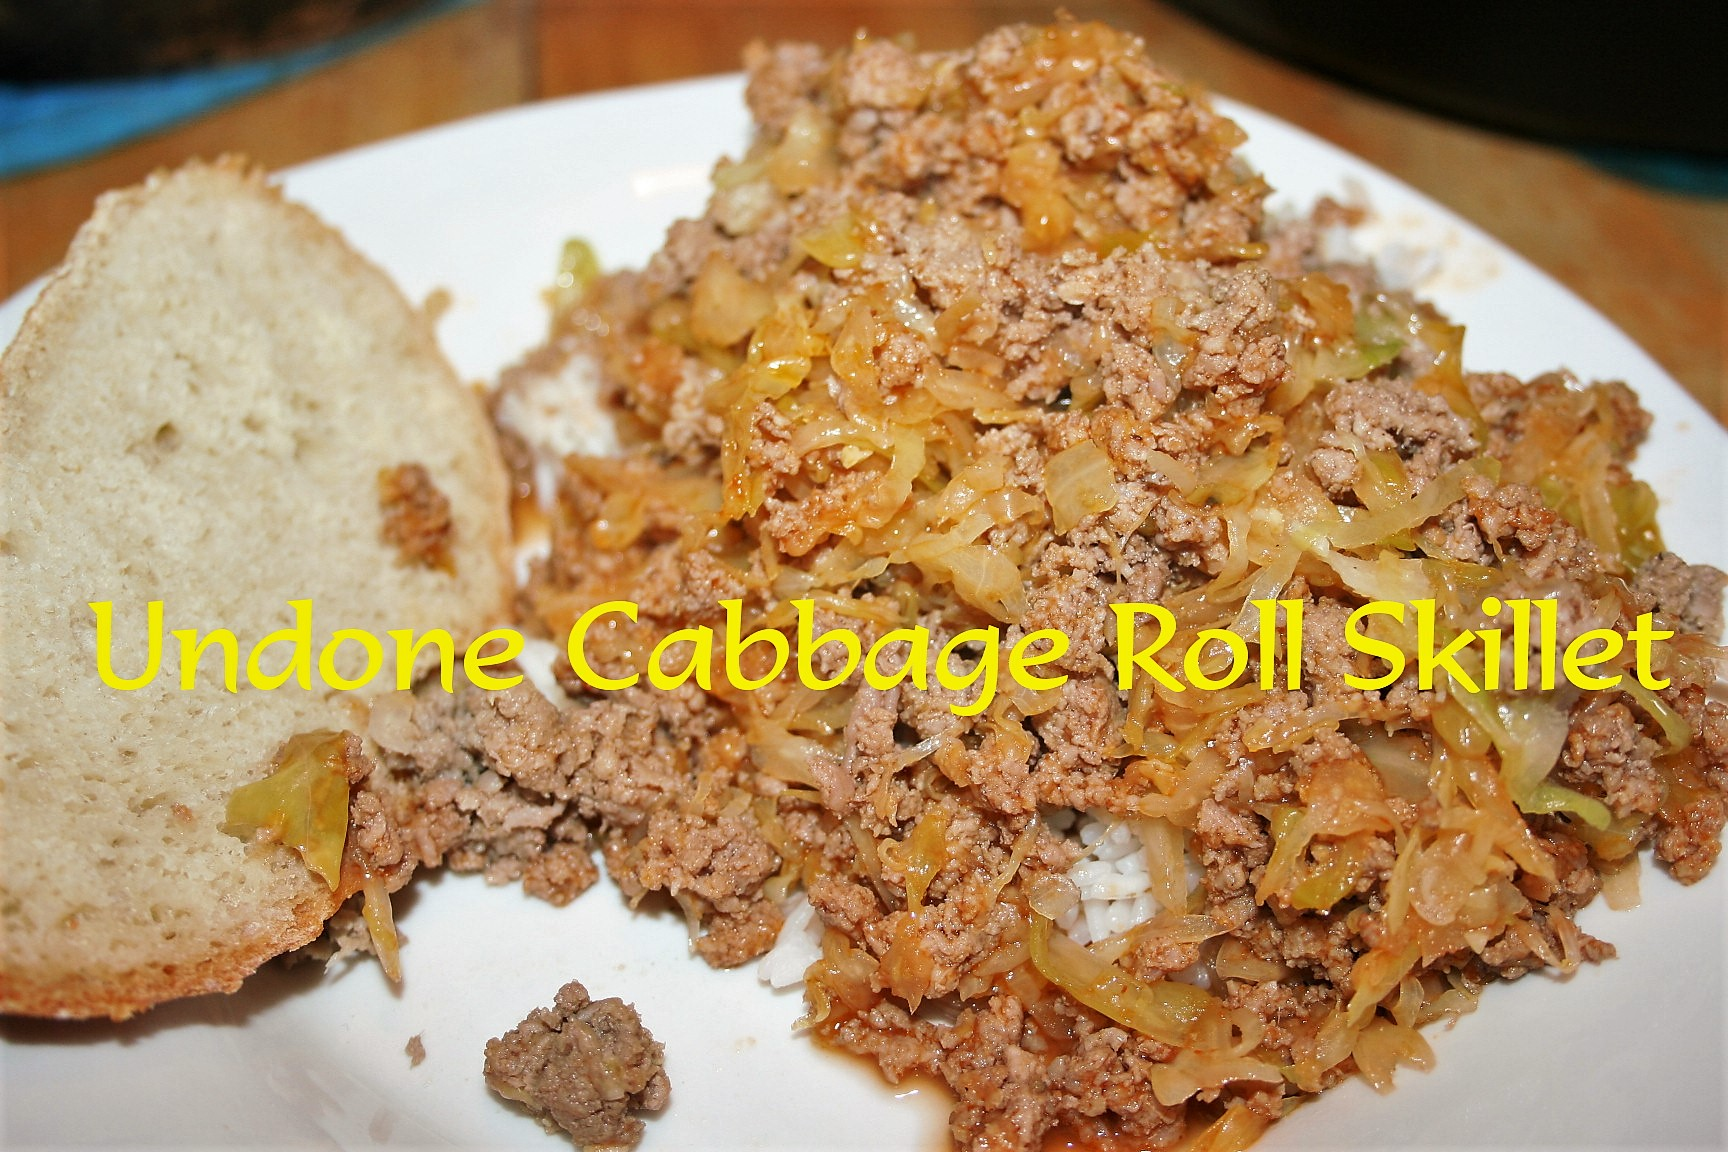 Undone Cabbage Roll Skillet ~ Lifeofjoy.me